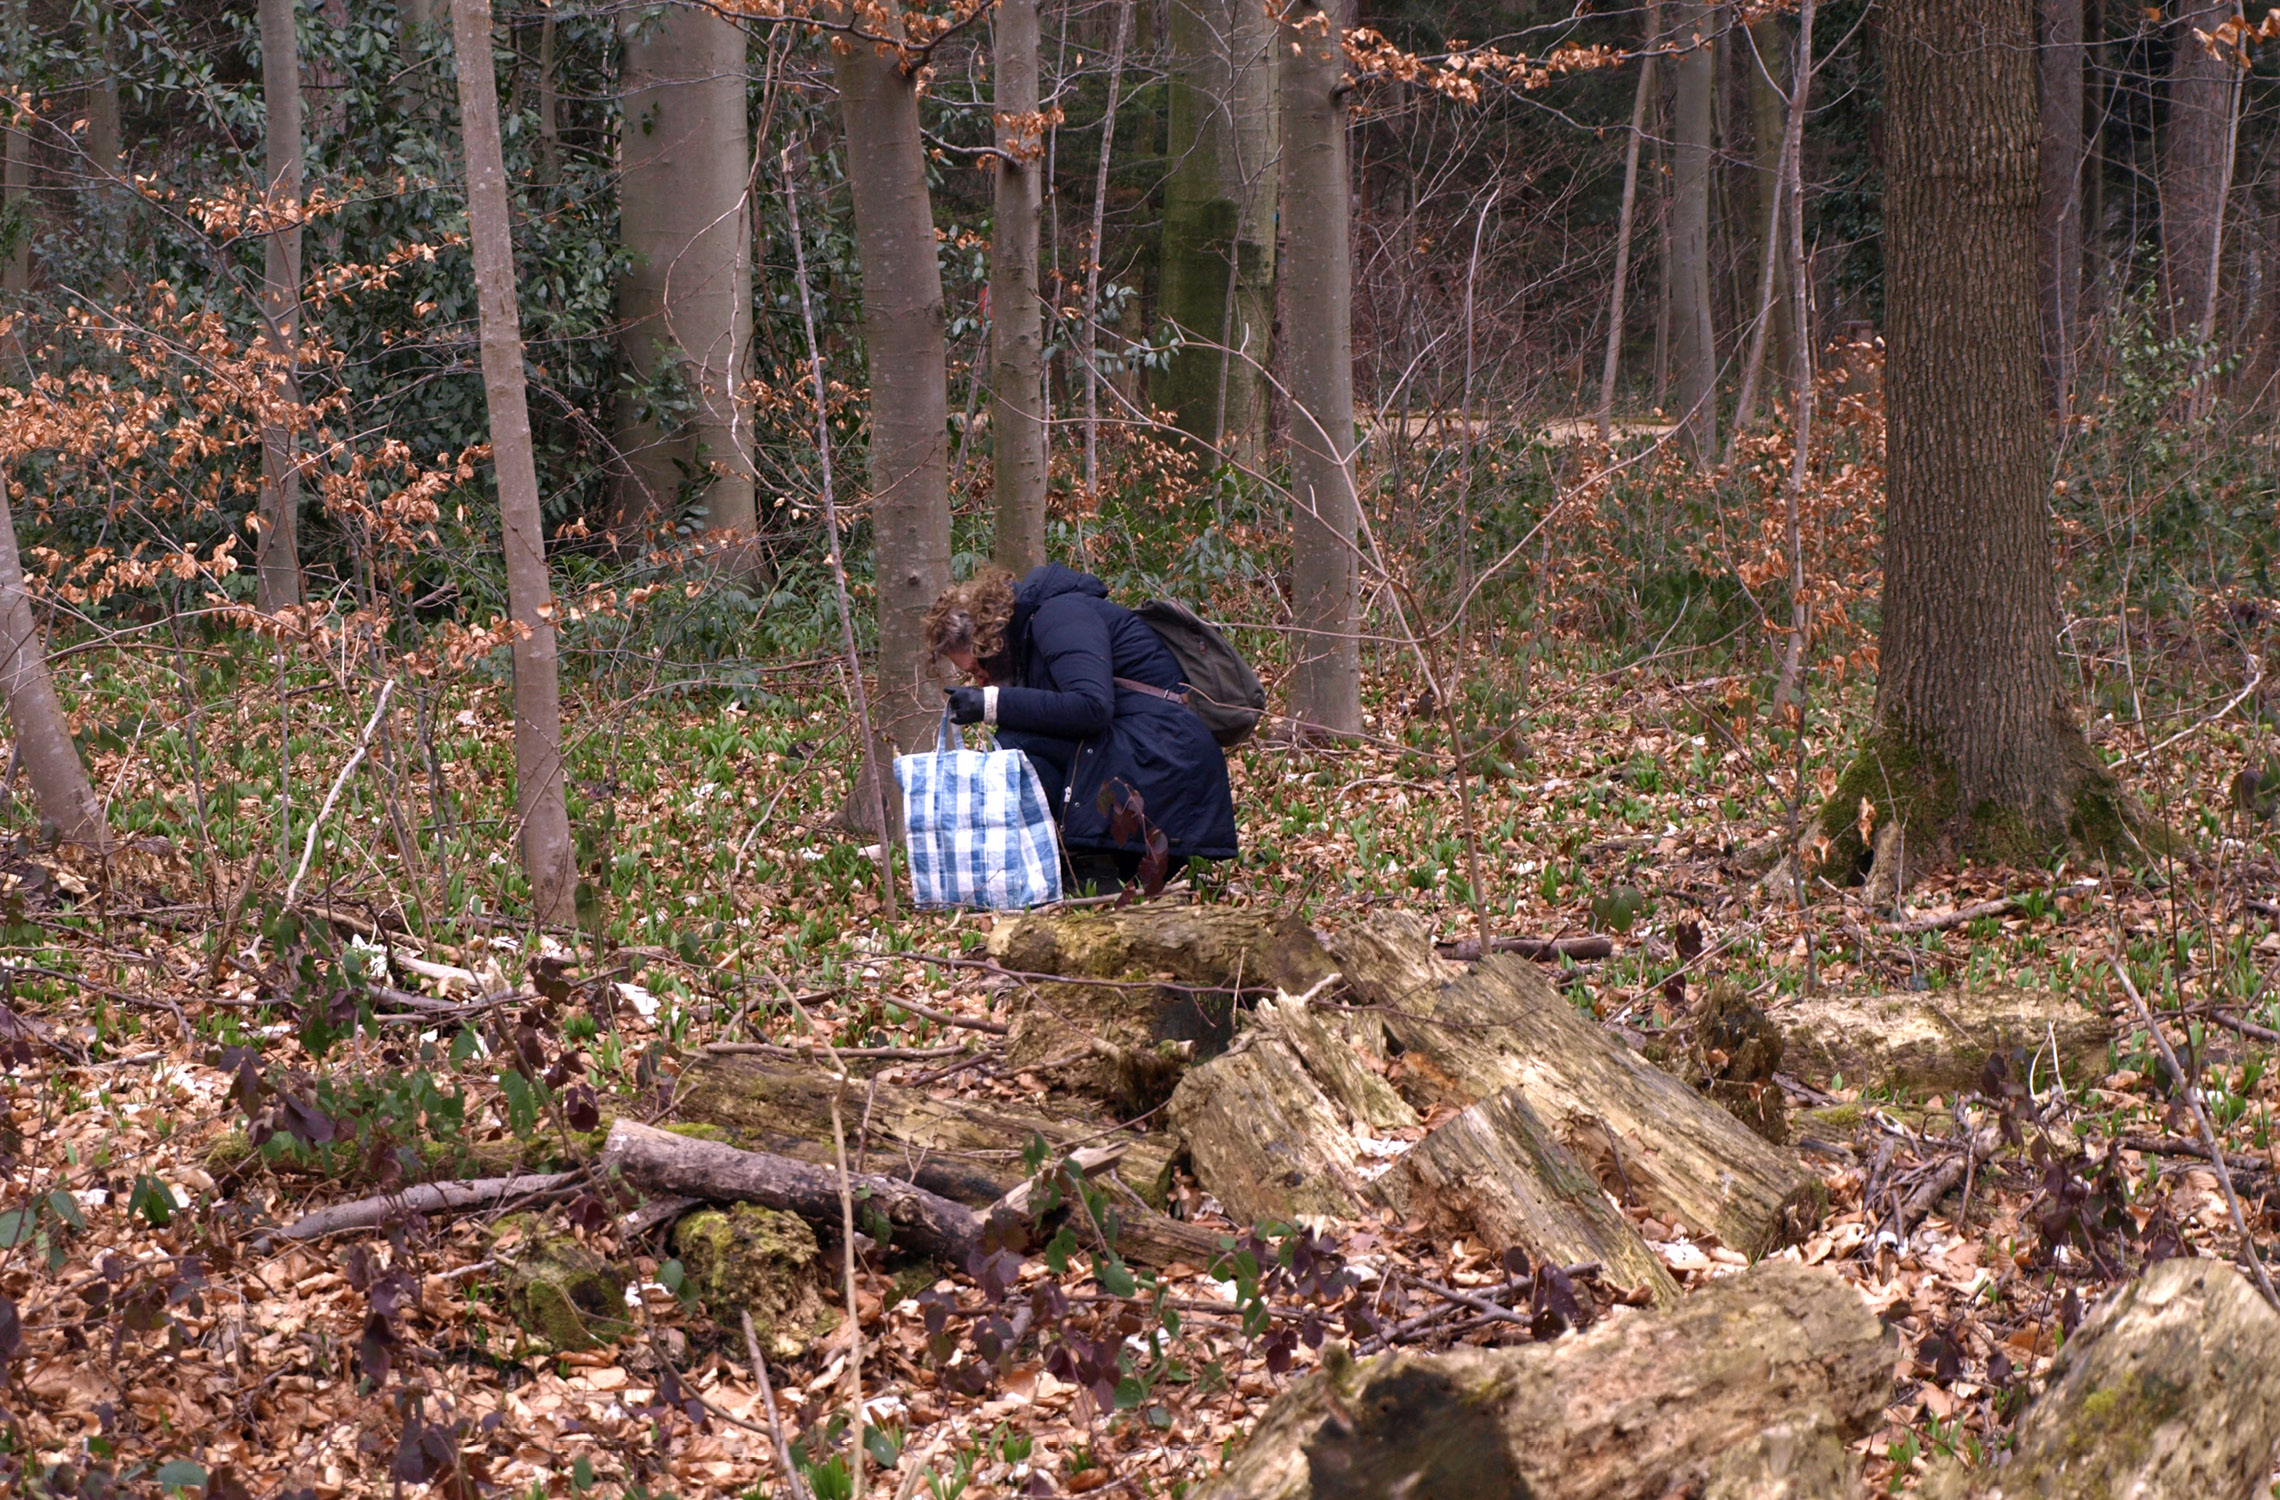 P. collecting pieces of nature in the forest (Zürich)